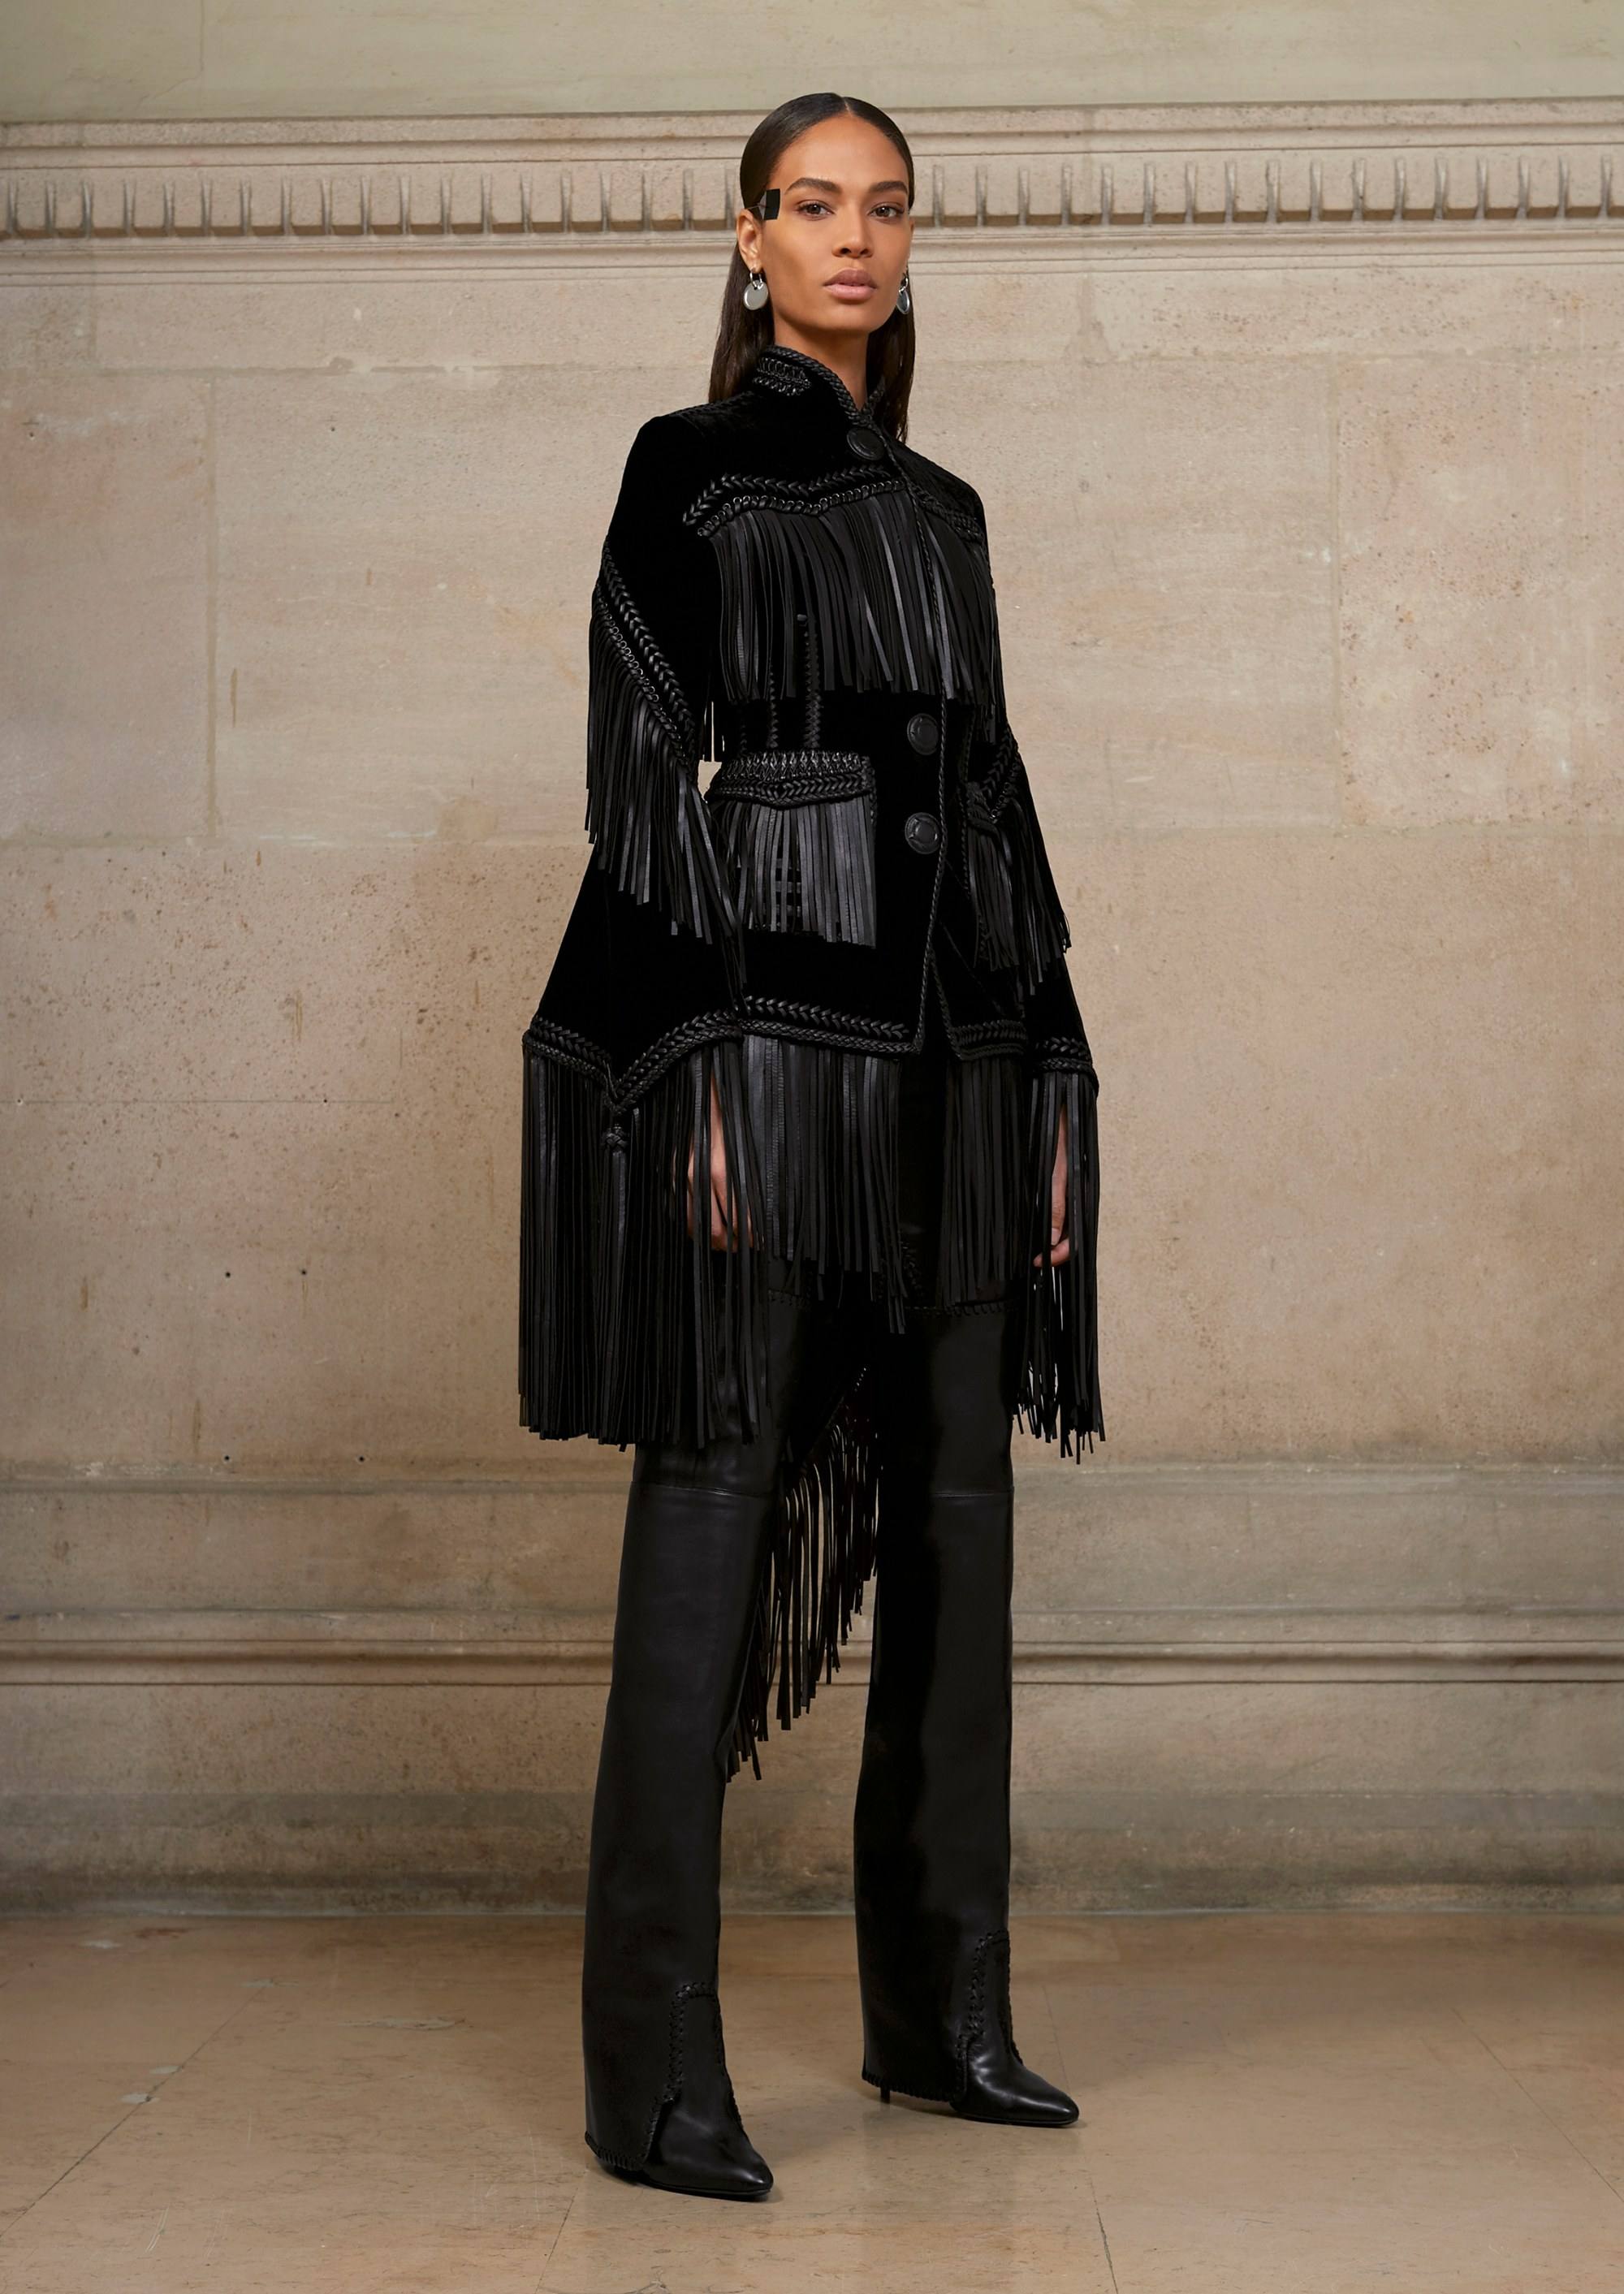 08-givenchy-couture-spring-2017.jpg